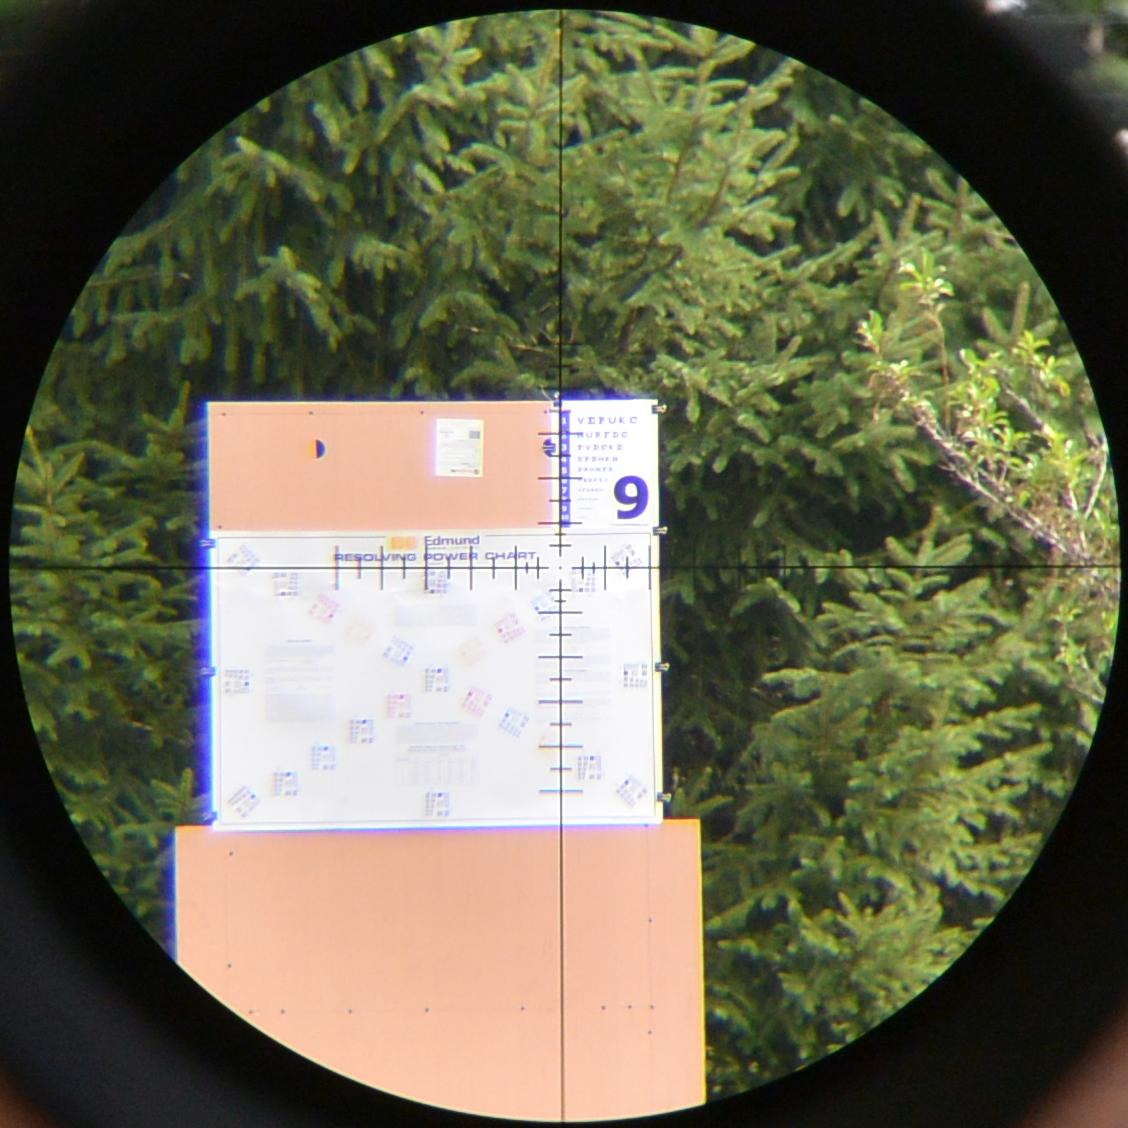 Optical Test Target for color rendition, resolution, and, to some extent, chromatic aberration viewed though a test scope